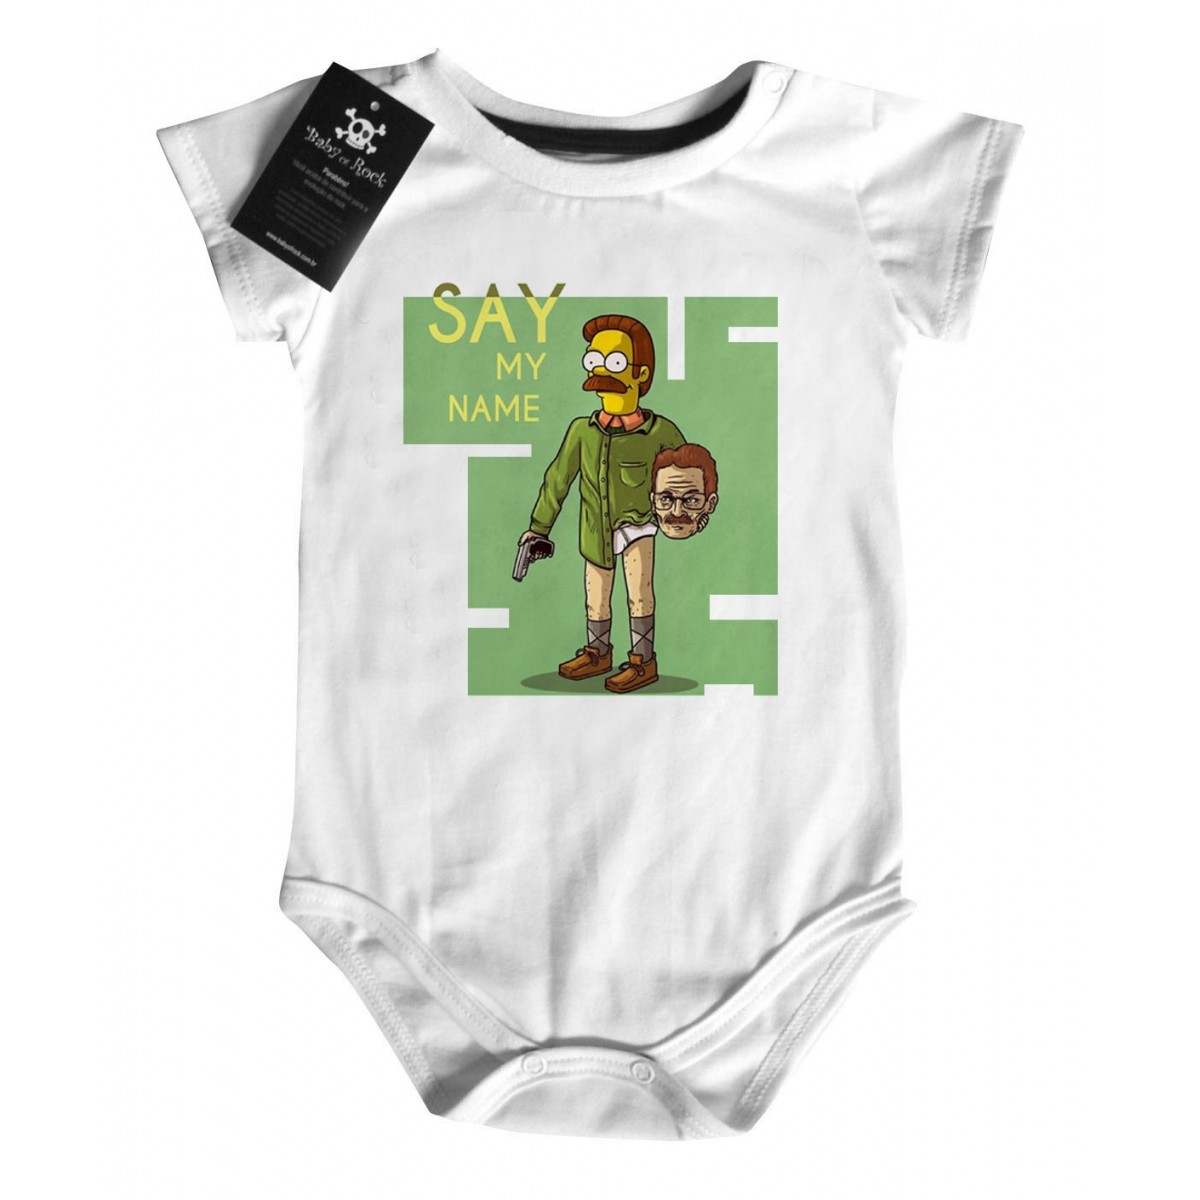 Camiseta Bebê Say my Name -  Simpsons - White - Baby Monster - Body Bebe